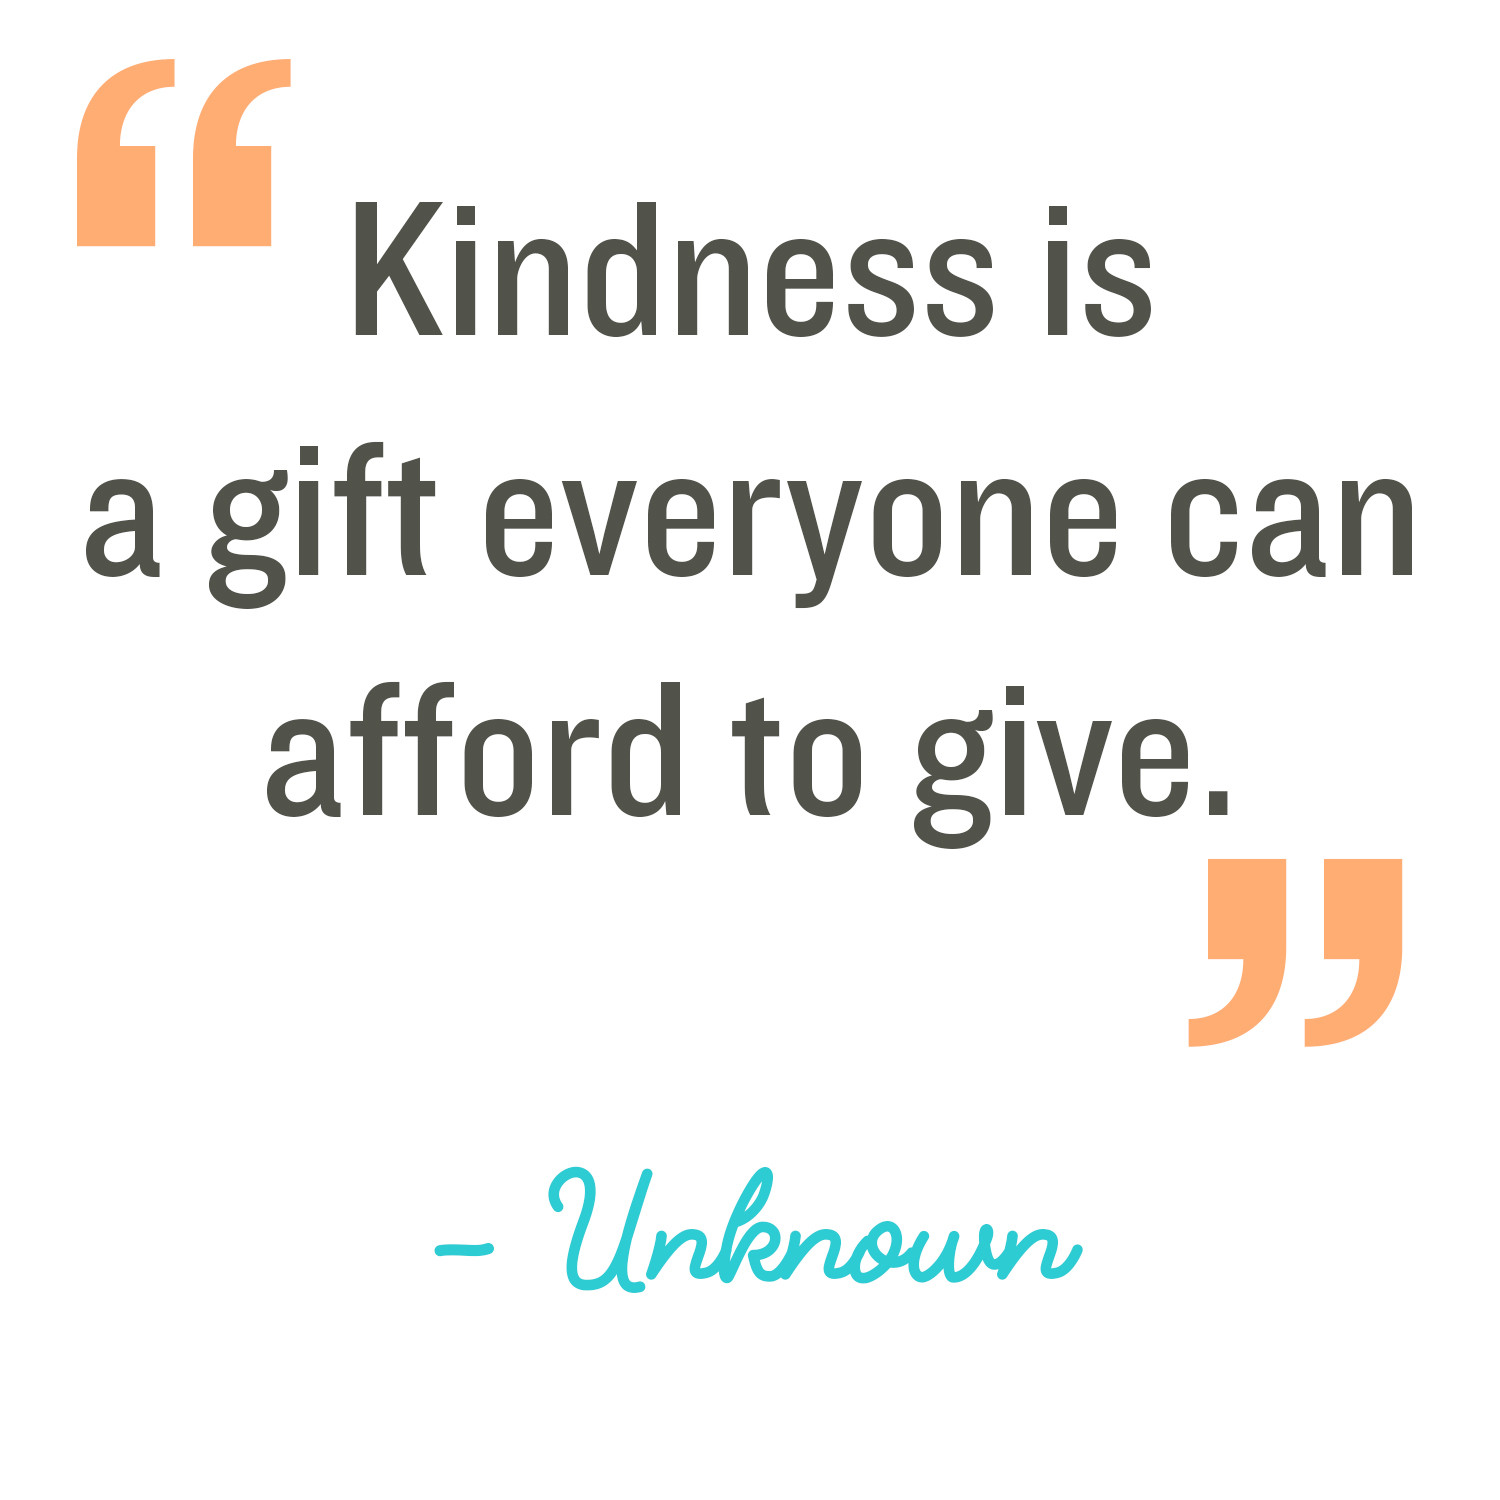 Acts Of Kindness Quotes  Random Acts of Kindness Kindness Quote